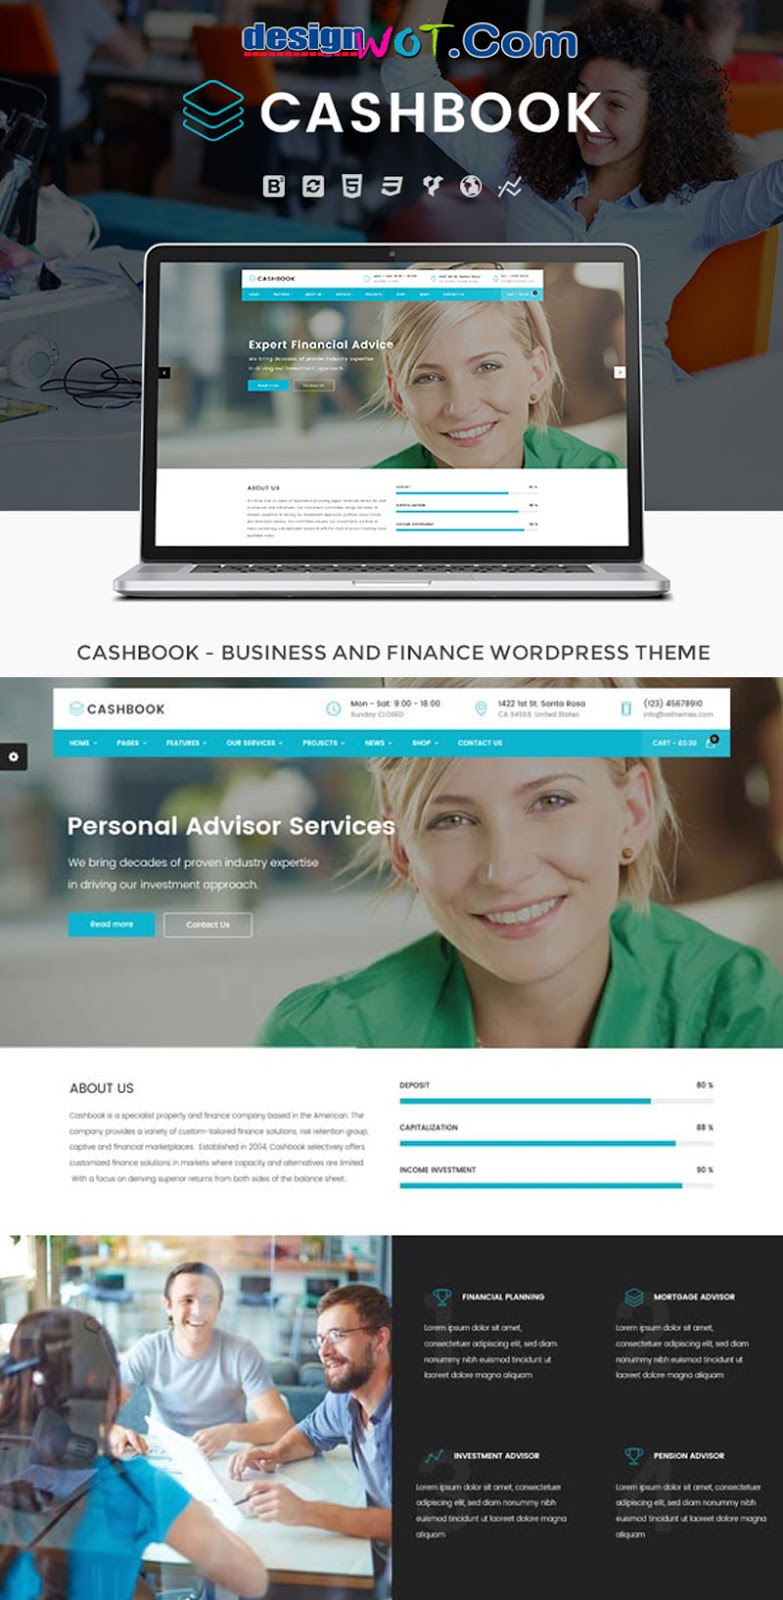 Cashbook - Business and Finance WordPress Theme